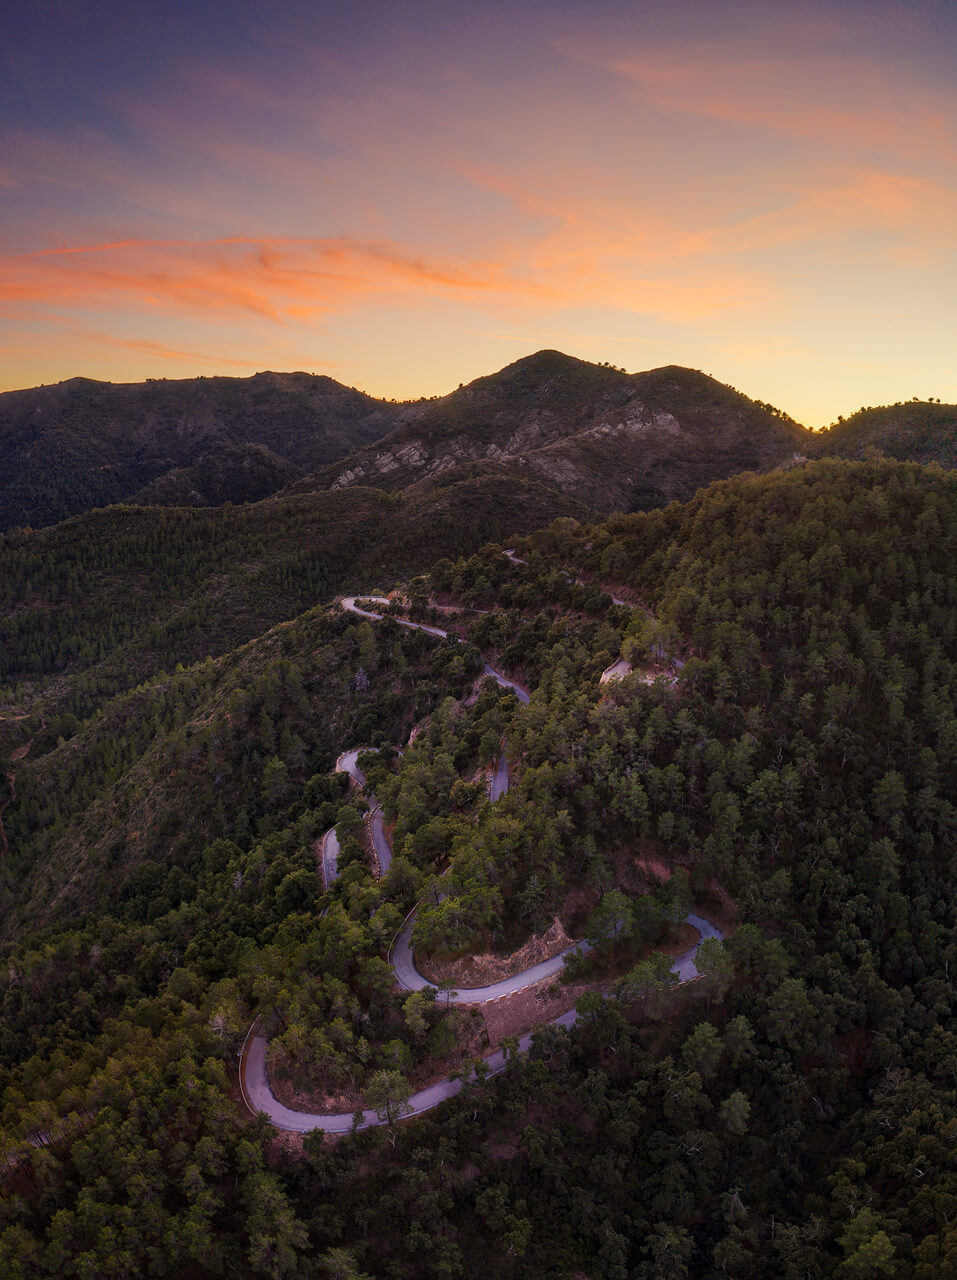 Panoramic Sunset Road At Mountain - DJI Mavic2 Pro